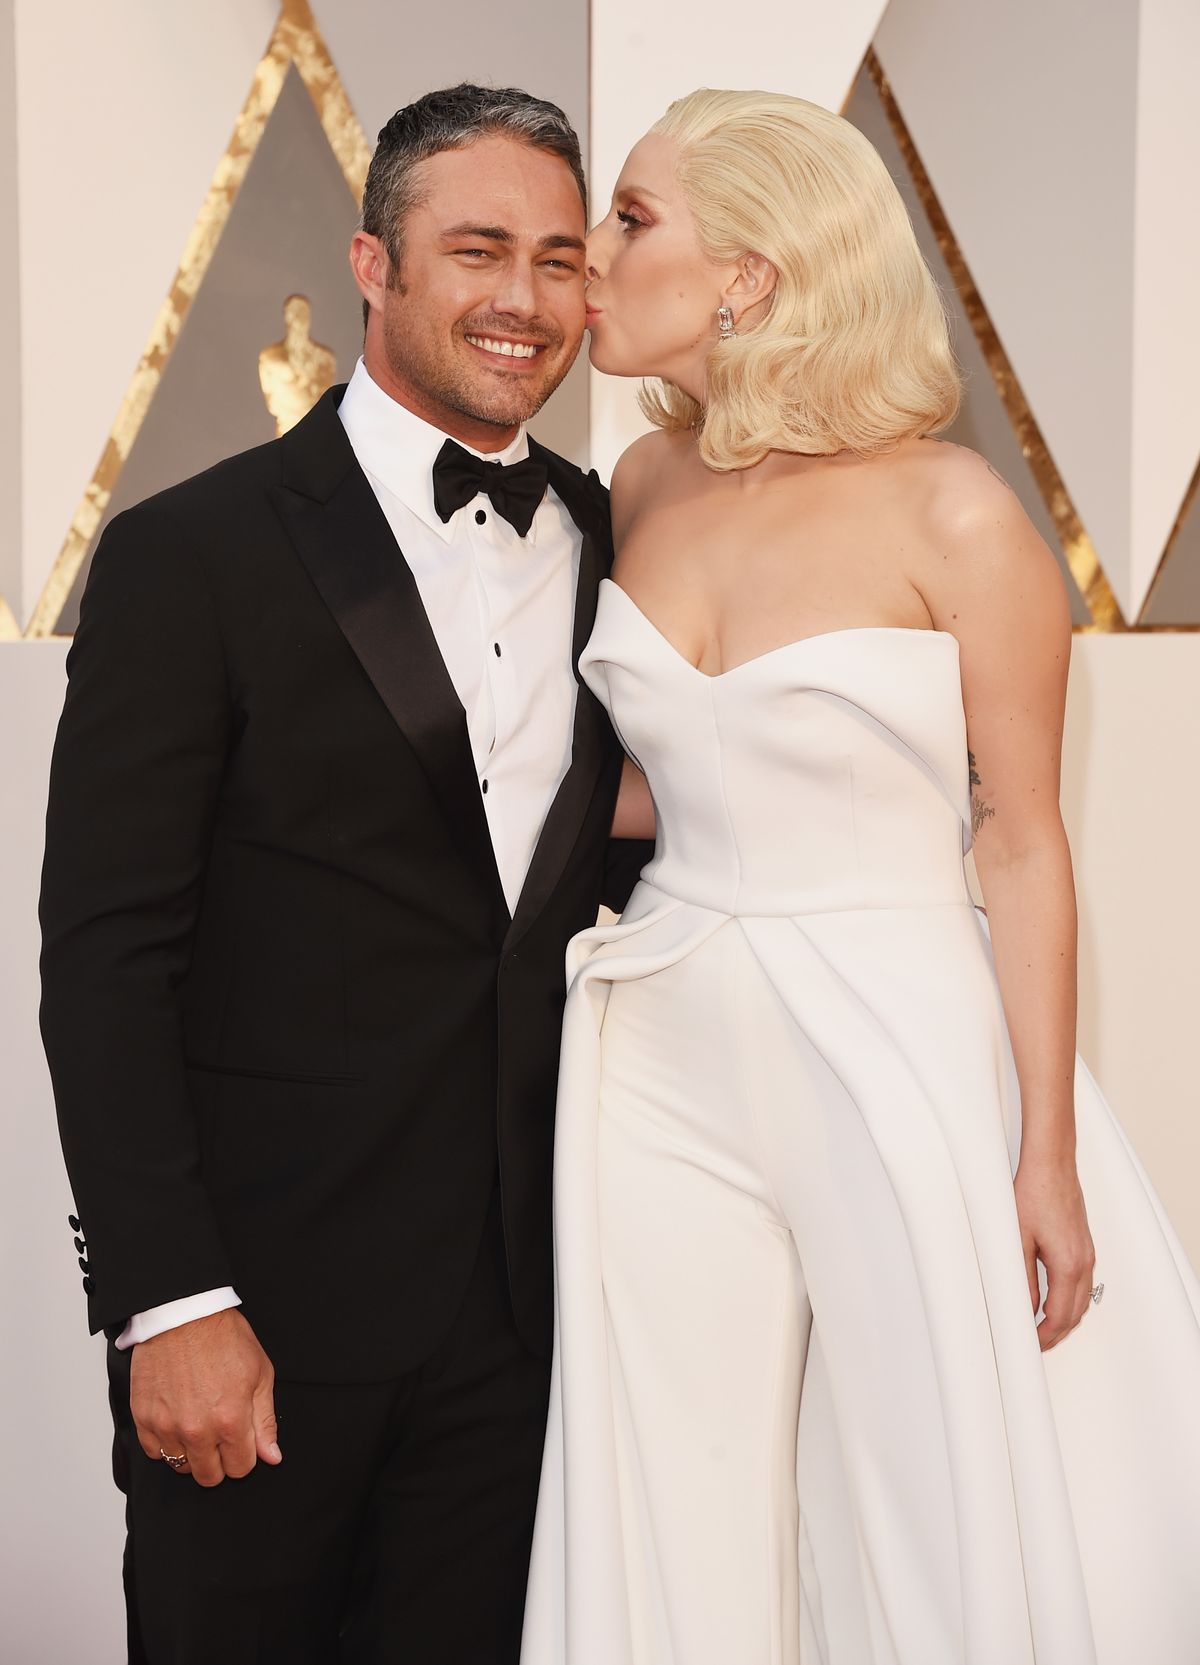 HOLLYWOOD, CA - FEBRUARY 28: Recording artist Lady Gaga (R) kisses actor Taylor Kinney at the 88th Annual Academy Awards at Hollywood & Highland Center on February 28, 2016 in Hollywood, California. (Photo by Jason Merritt/Getty Images)